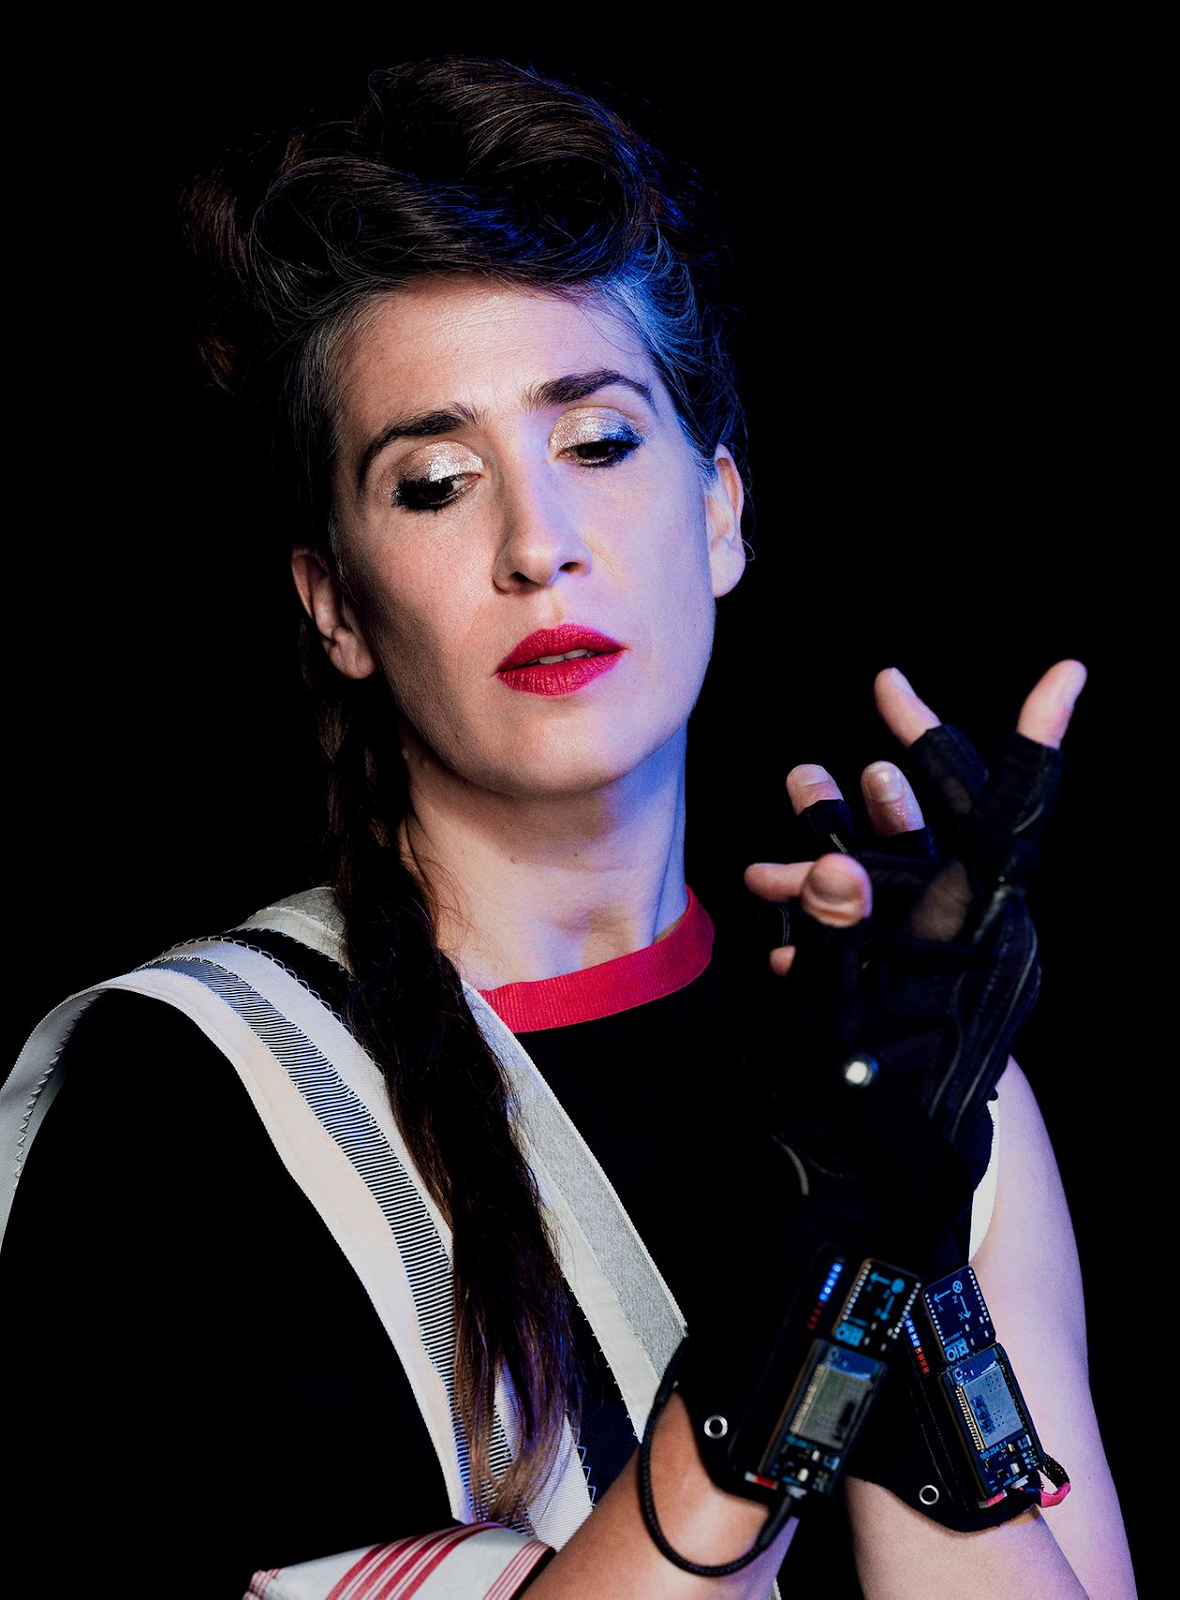 Imogen Heap performing on stage.  Photo: Benedict Evans / The Wall Street Journal